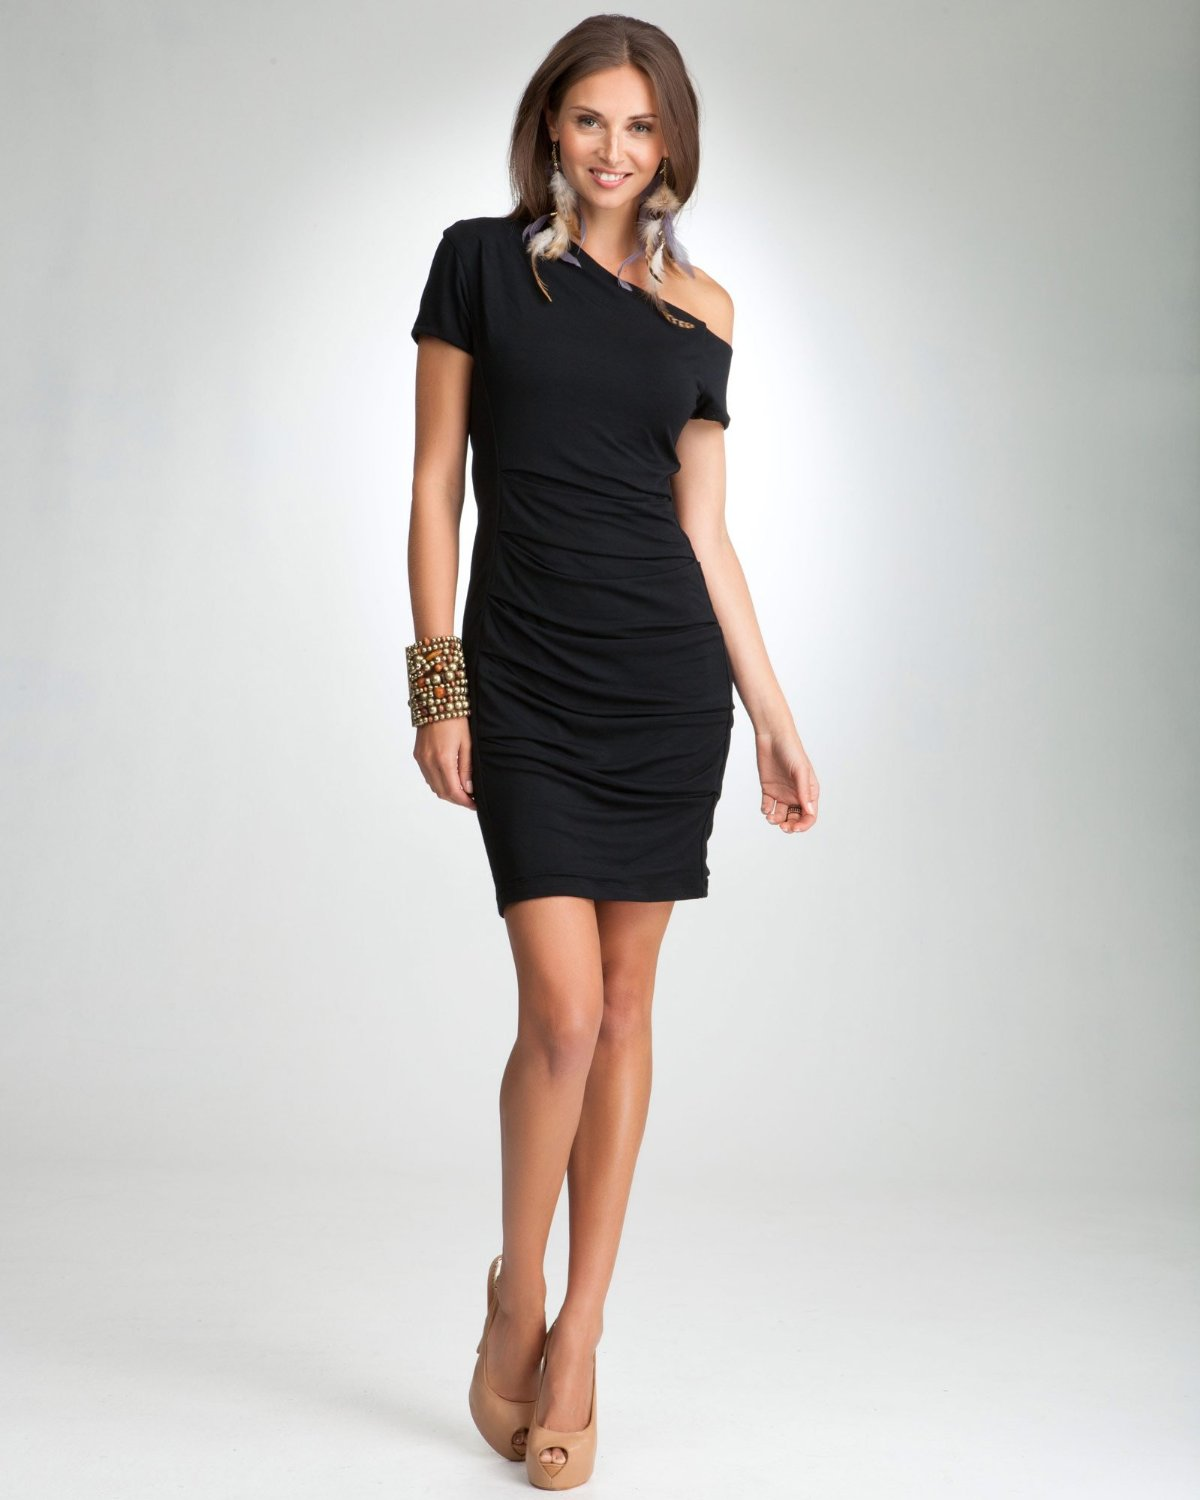 dresses black Women s